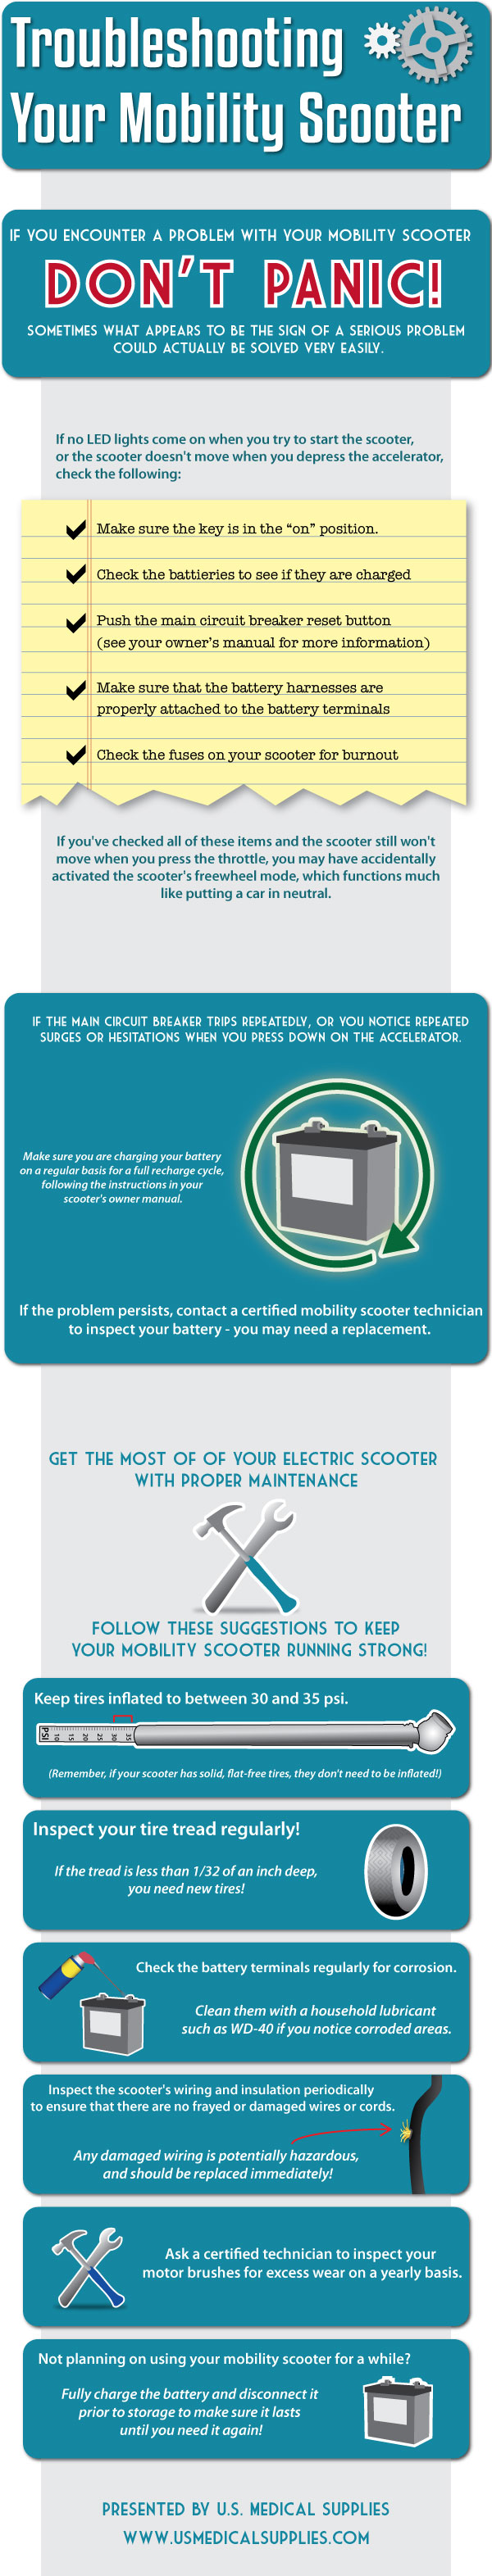 Troubleshooting your scooter